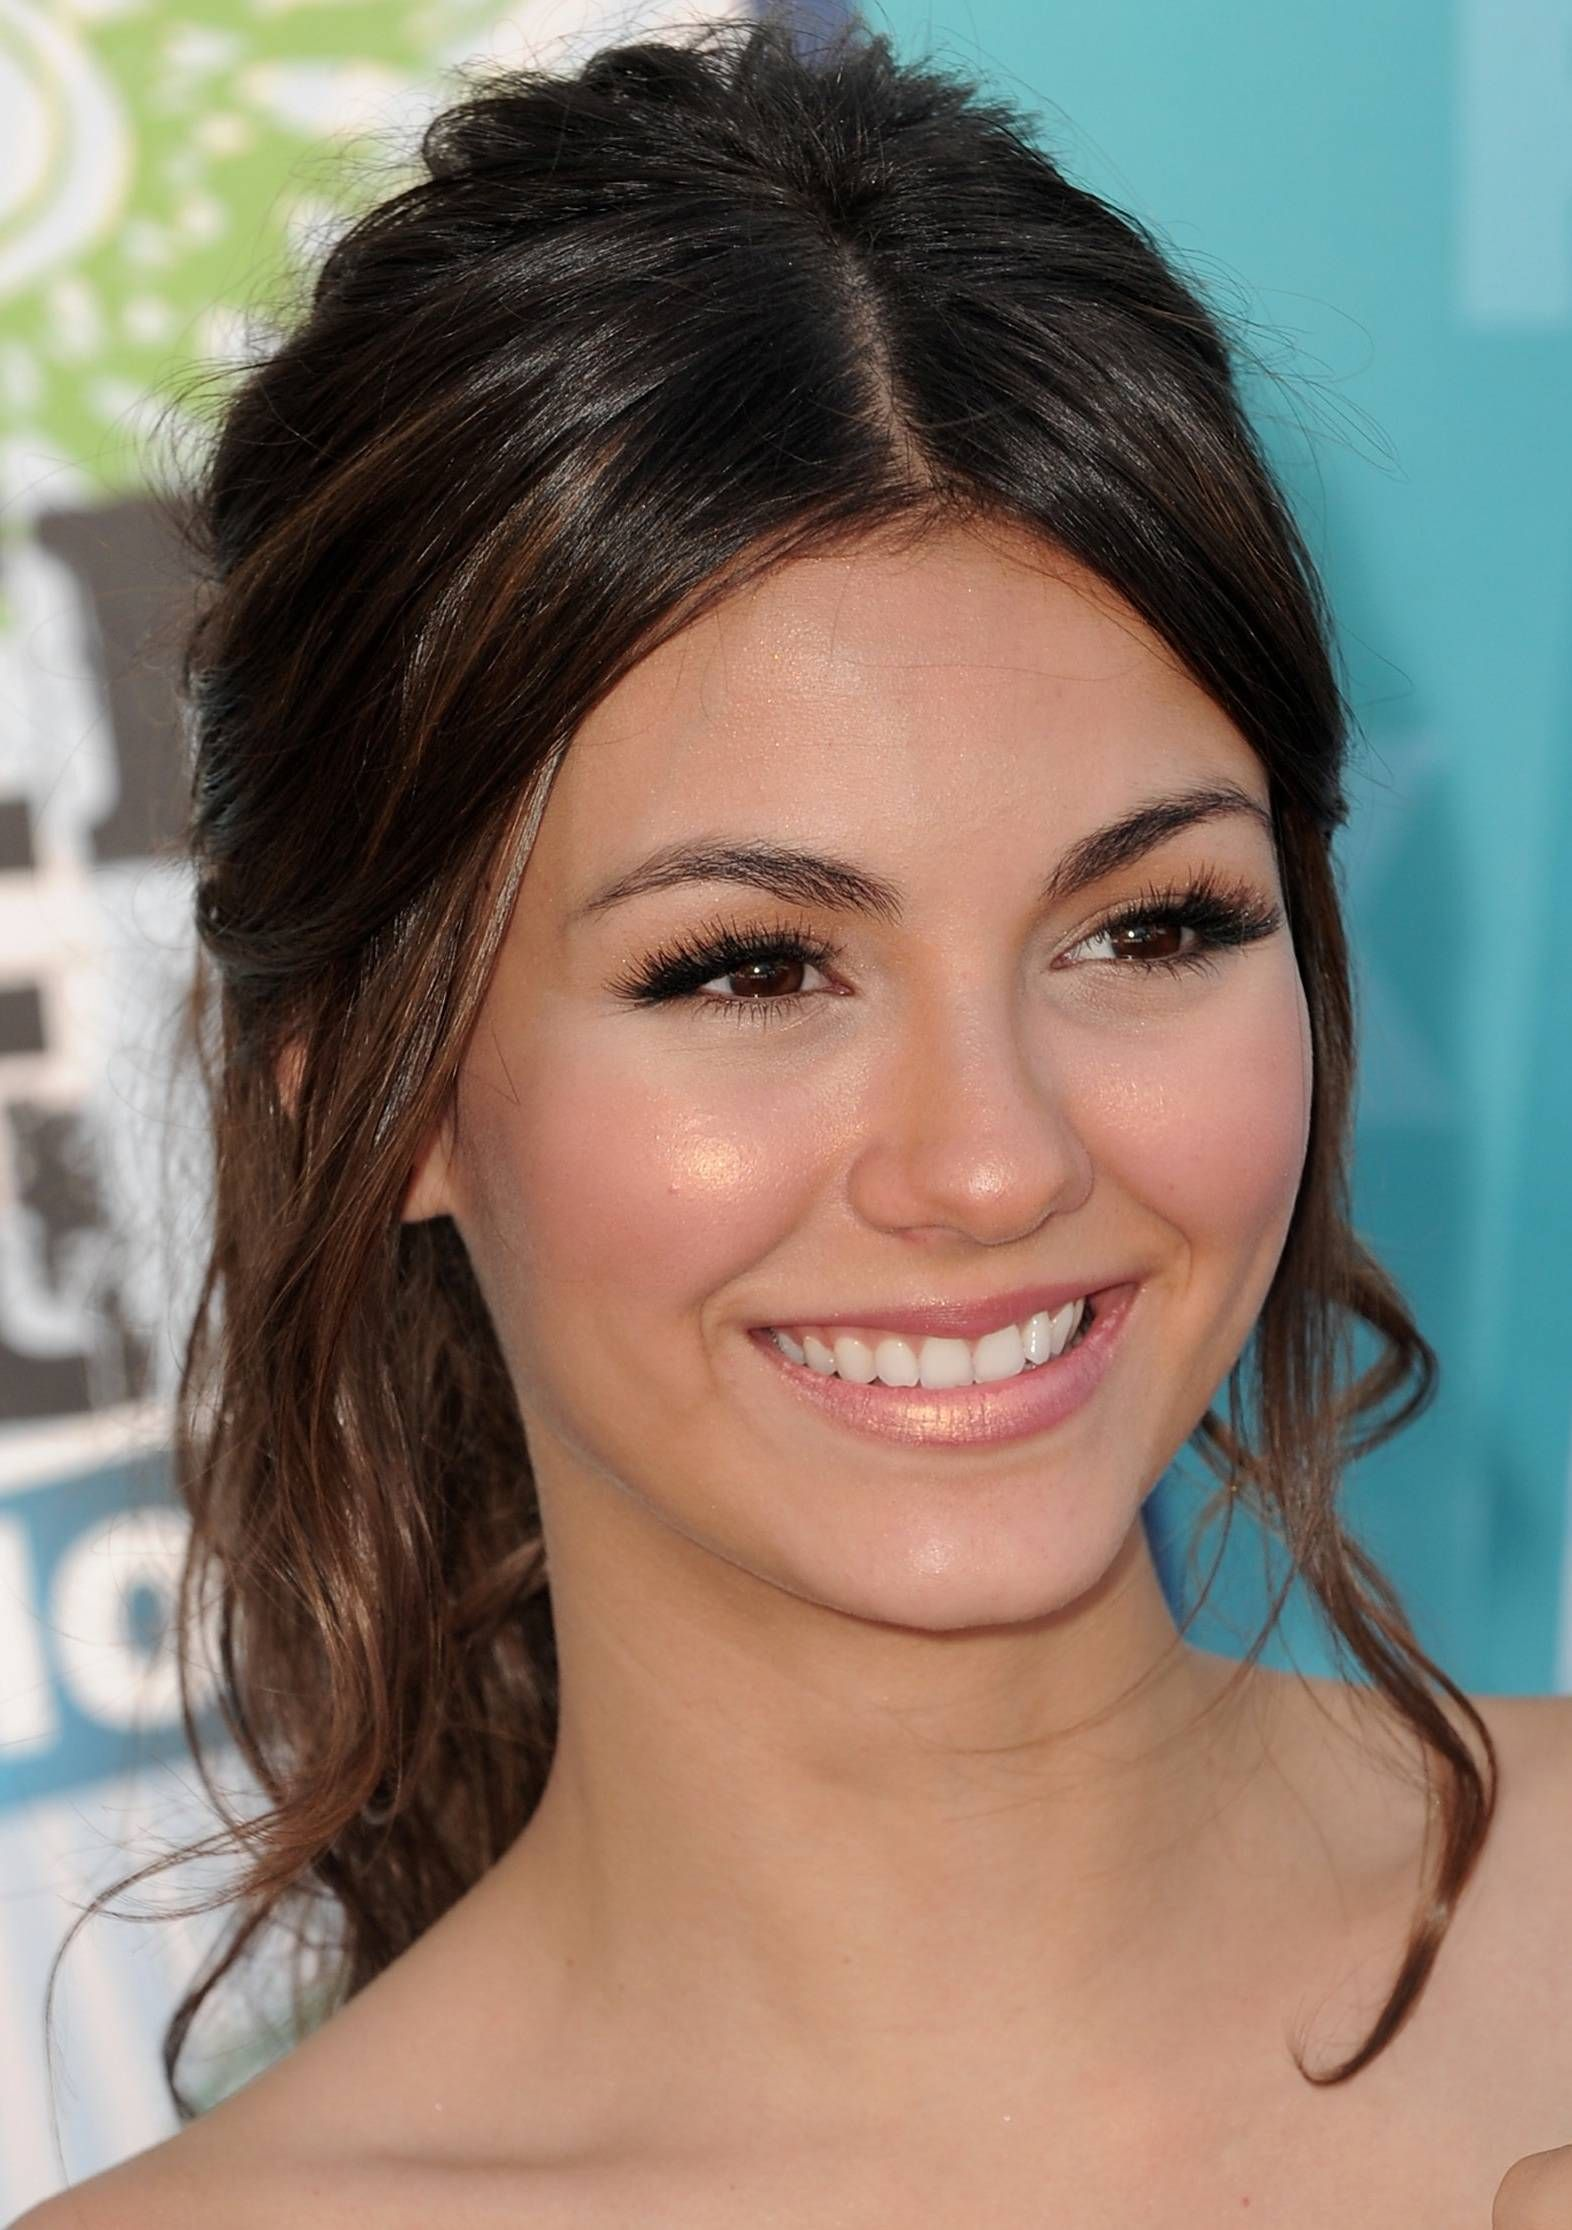 Pinned back hairstyles for homecoming loose curls ponytail and makeup